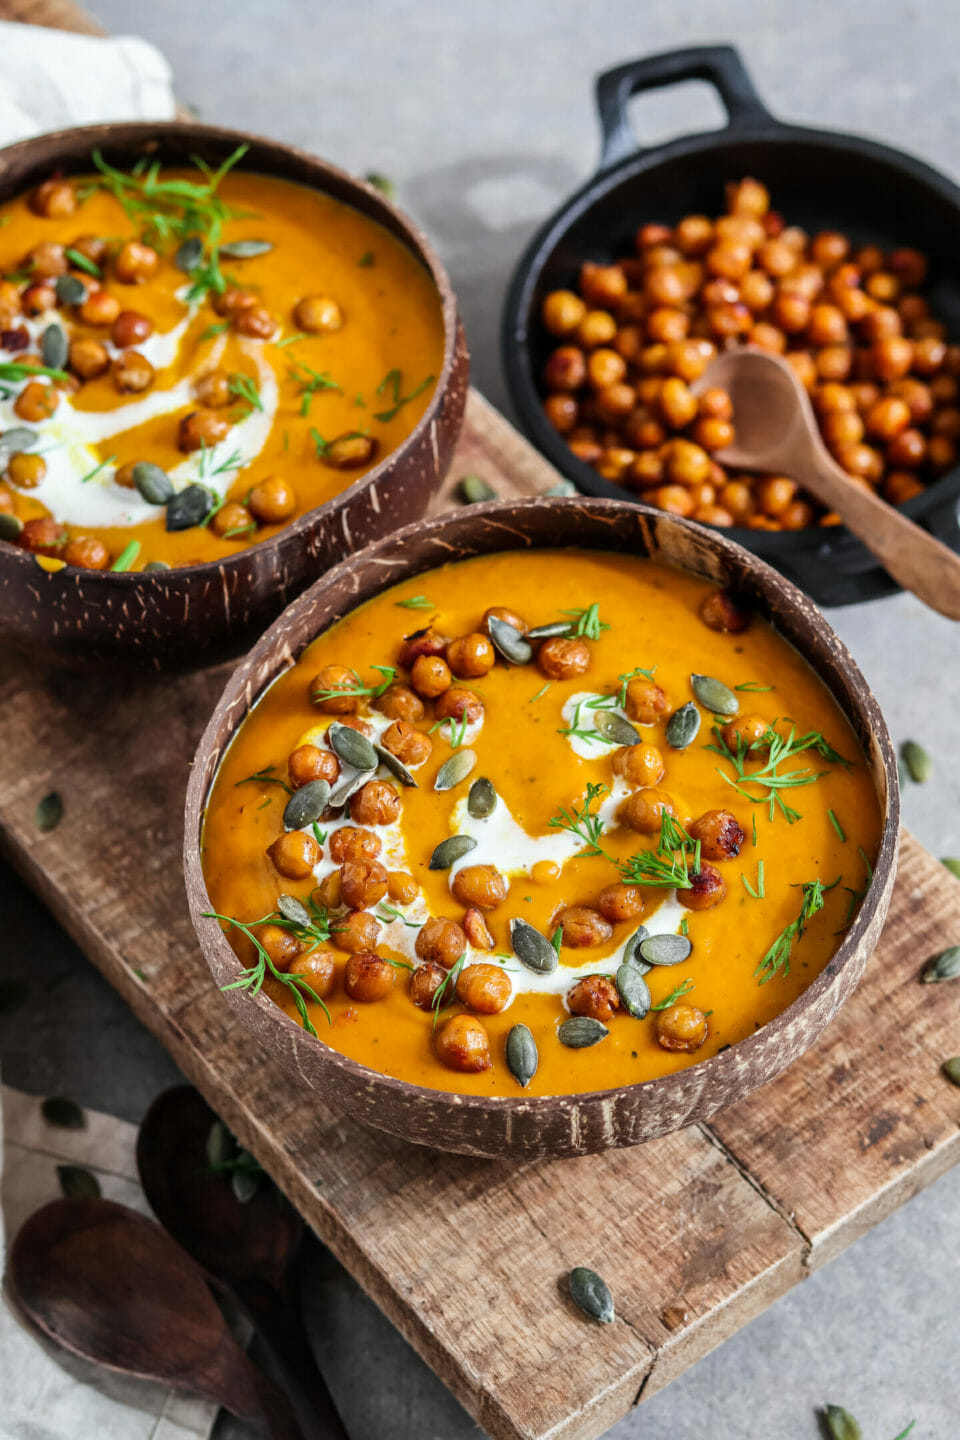 Creamy pumpkin soup served with coconut milk, chickpeas and pumpkin seedsa